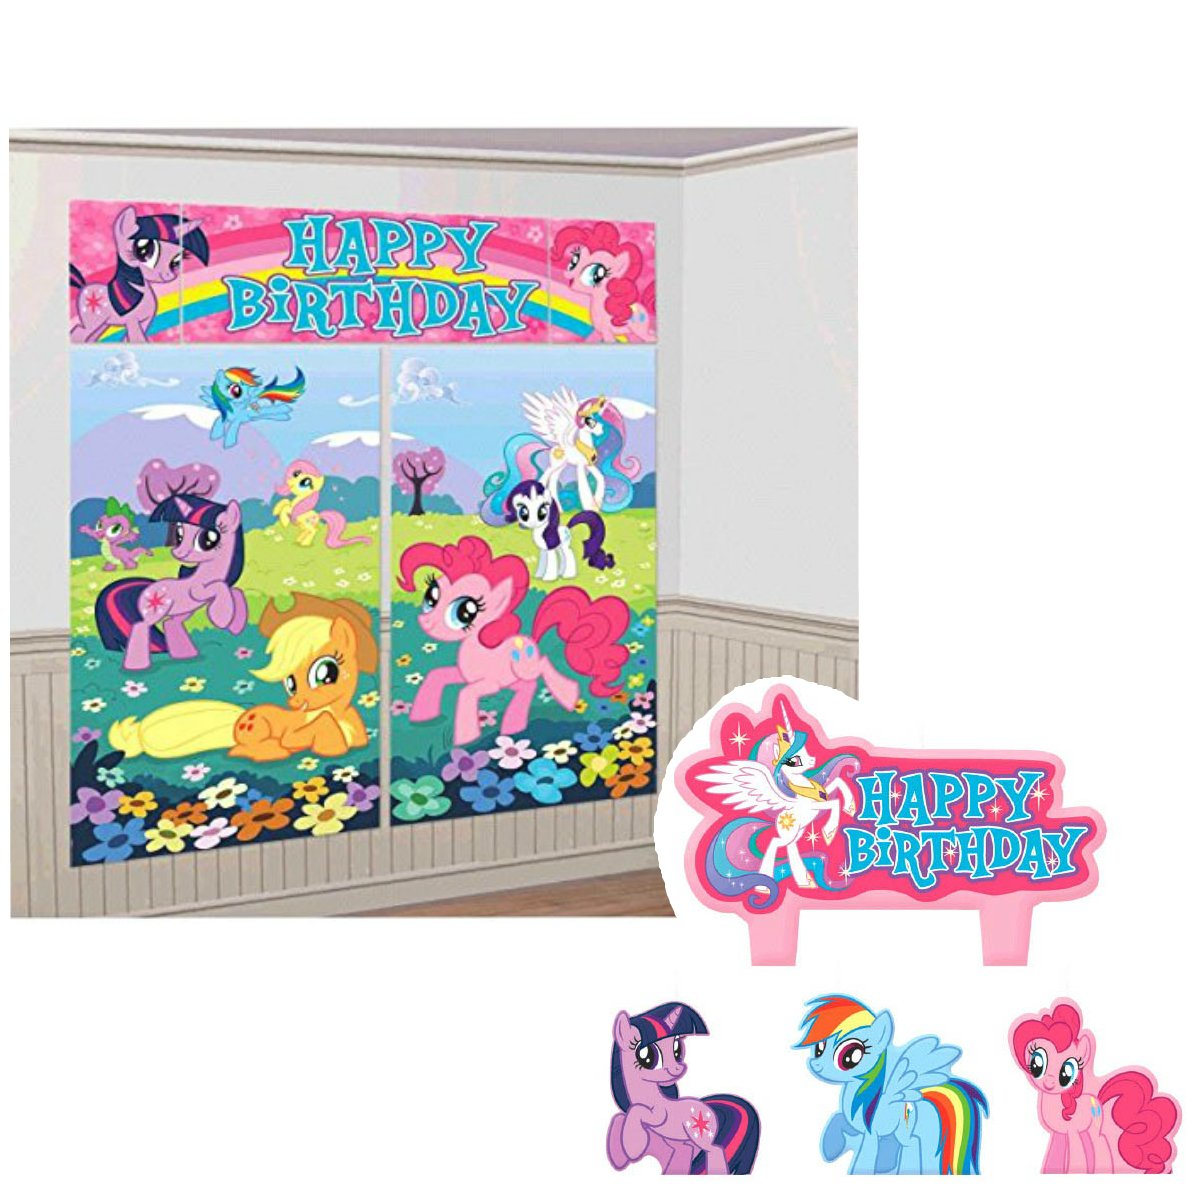 My Little Pony Birthday Cake Candle Set and Party Scene Setter Wall Decoration Bundle